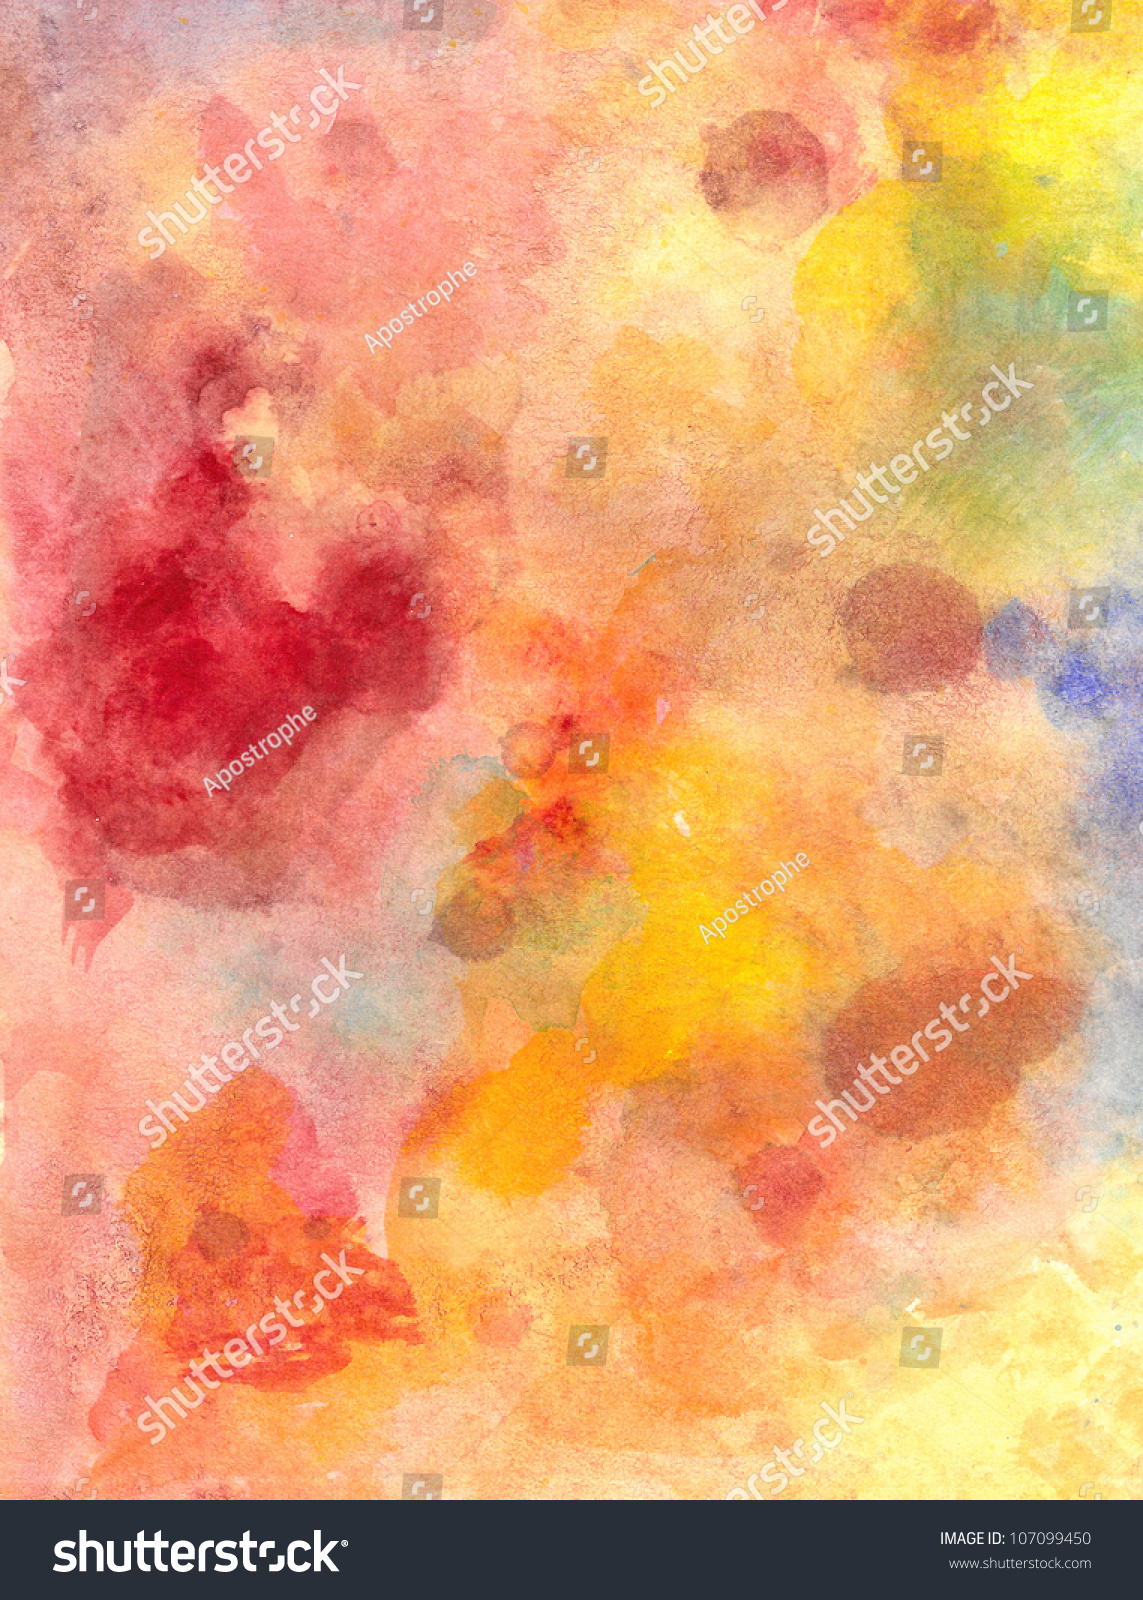 abstract watercolor background paper design bright stock illustration 107099450 shutterstock. Black Bedroom Furniture Sets. Home Design Ideas